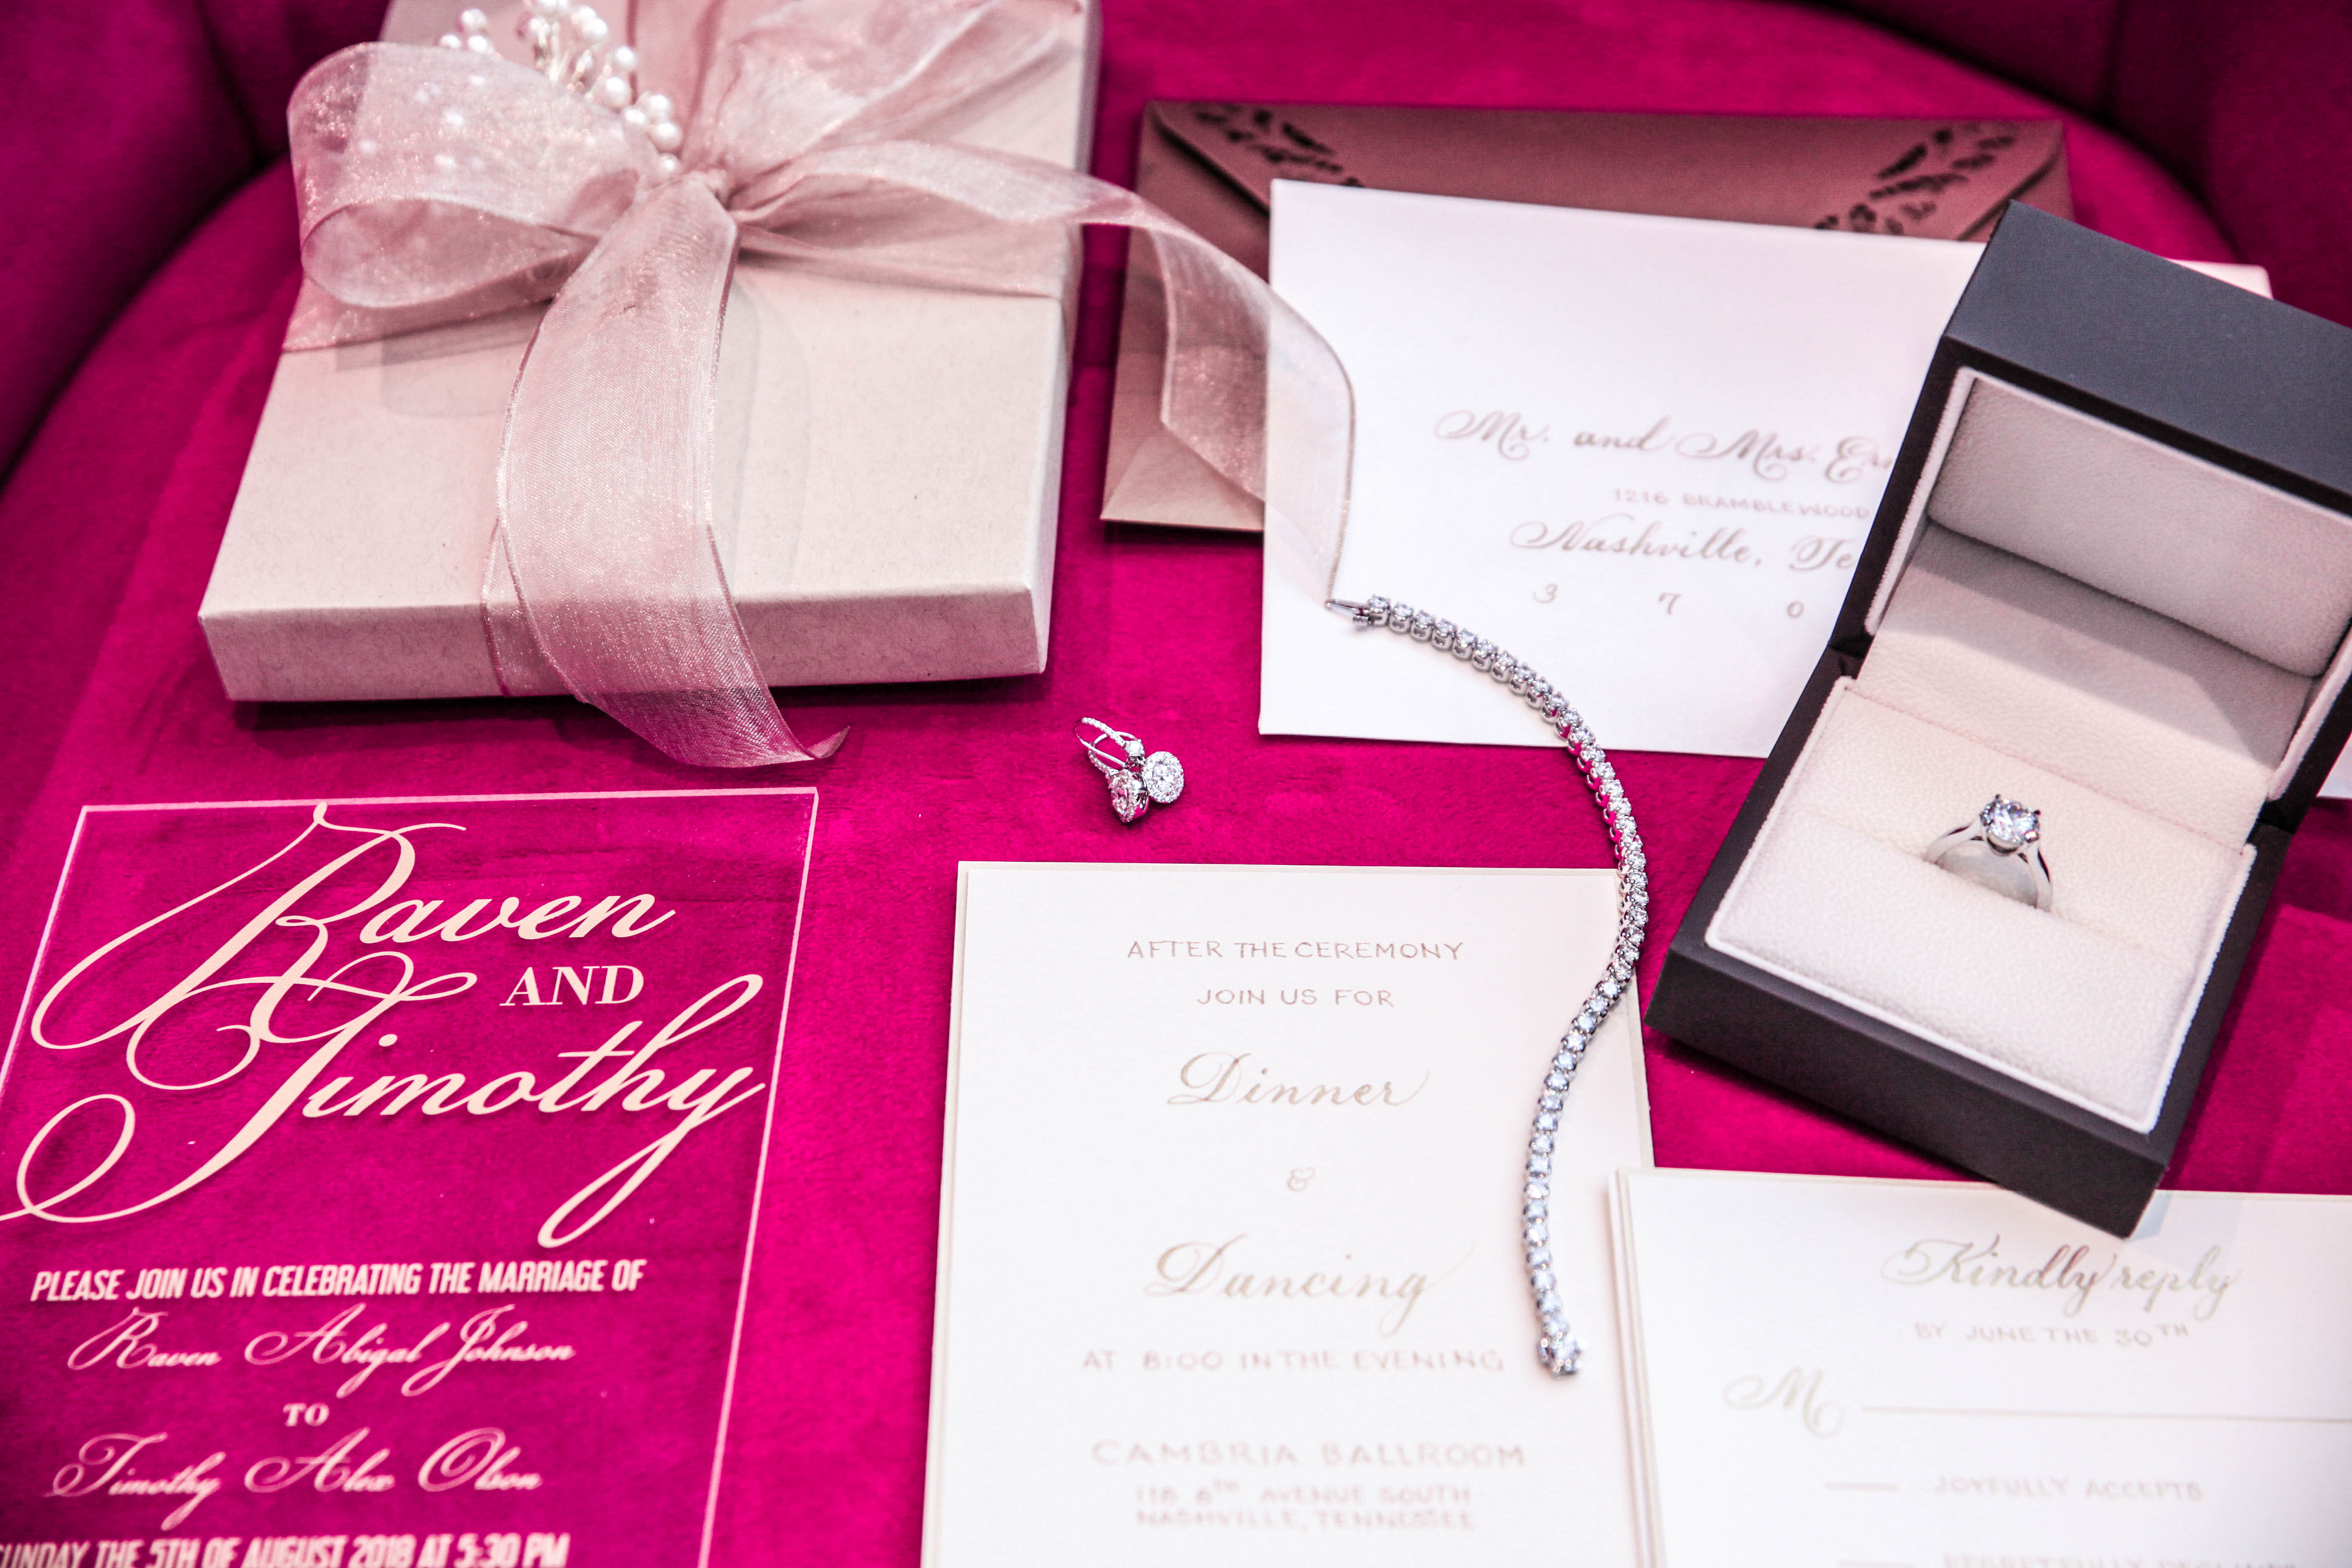 Invitation suite with jewelry